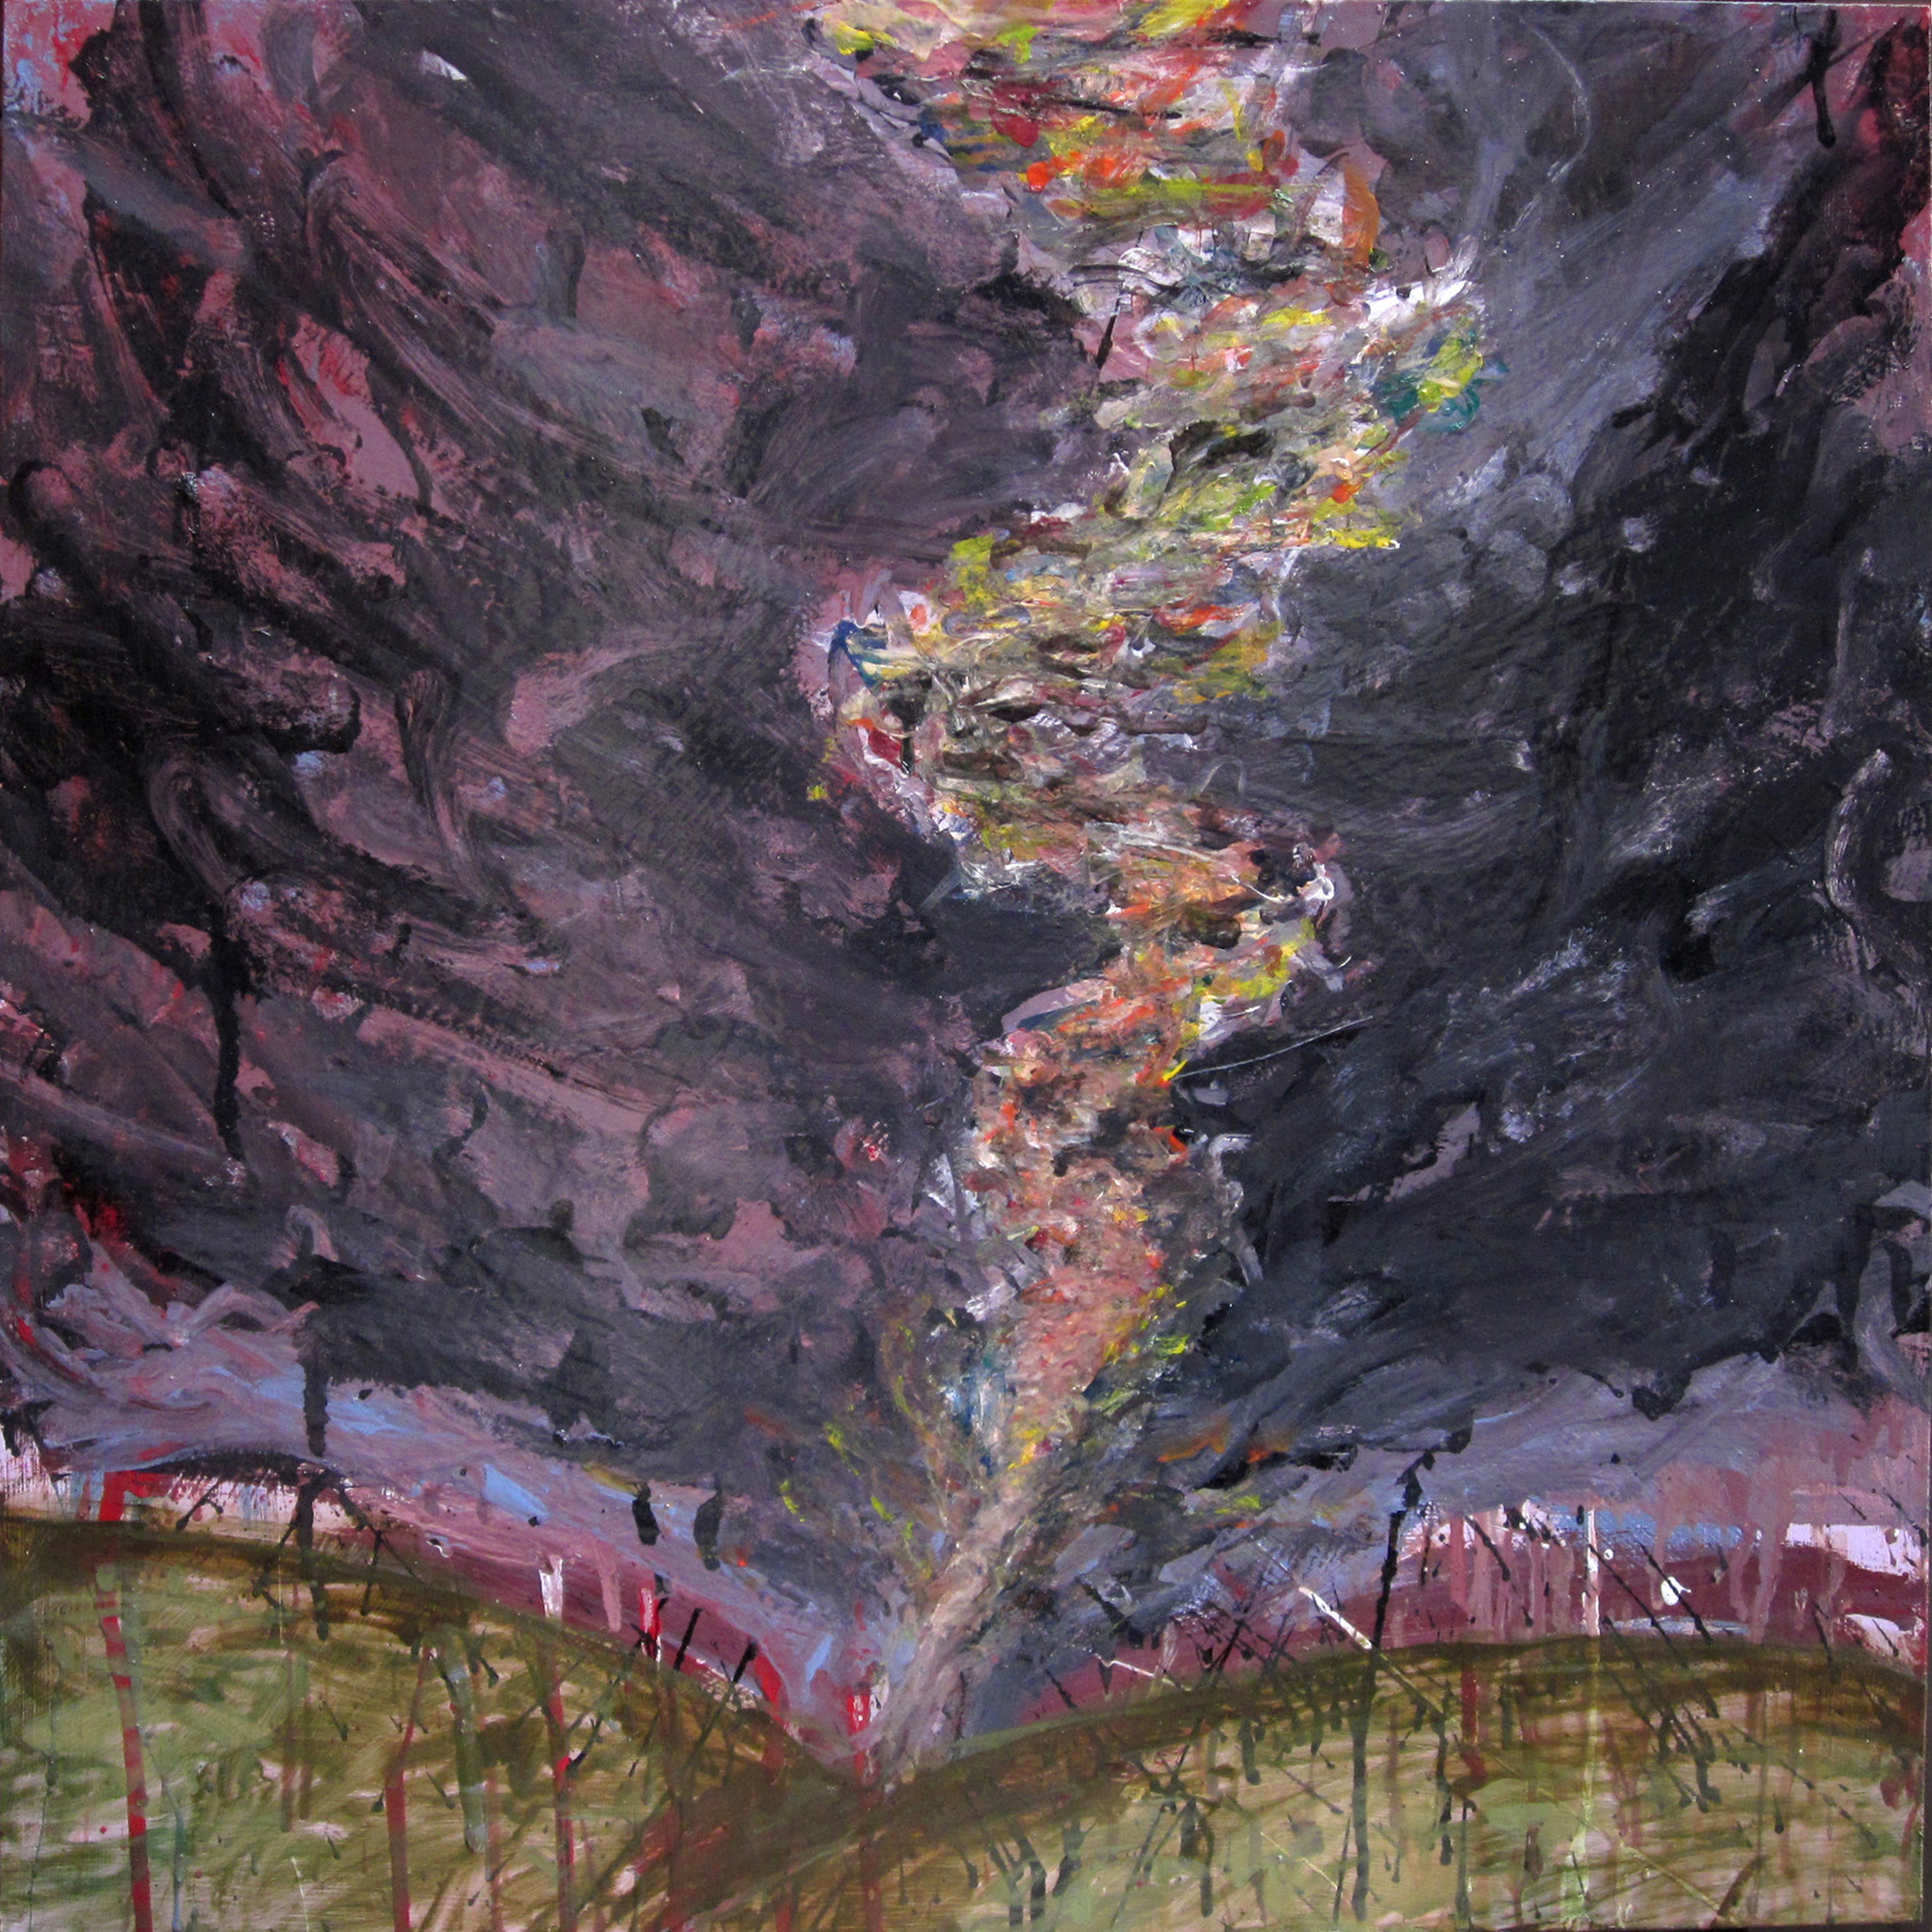 Dirty Panties Tornado (Painting 1)